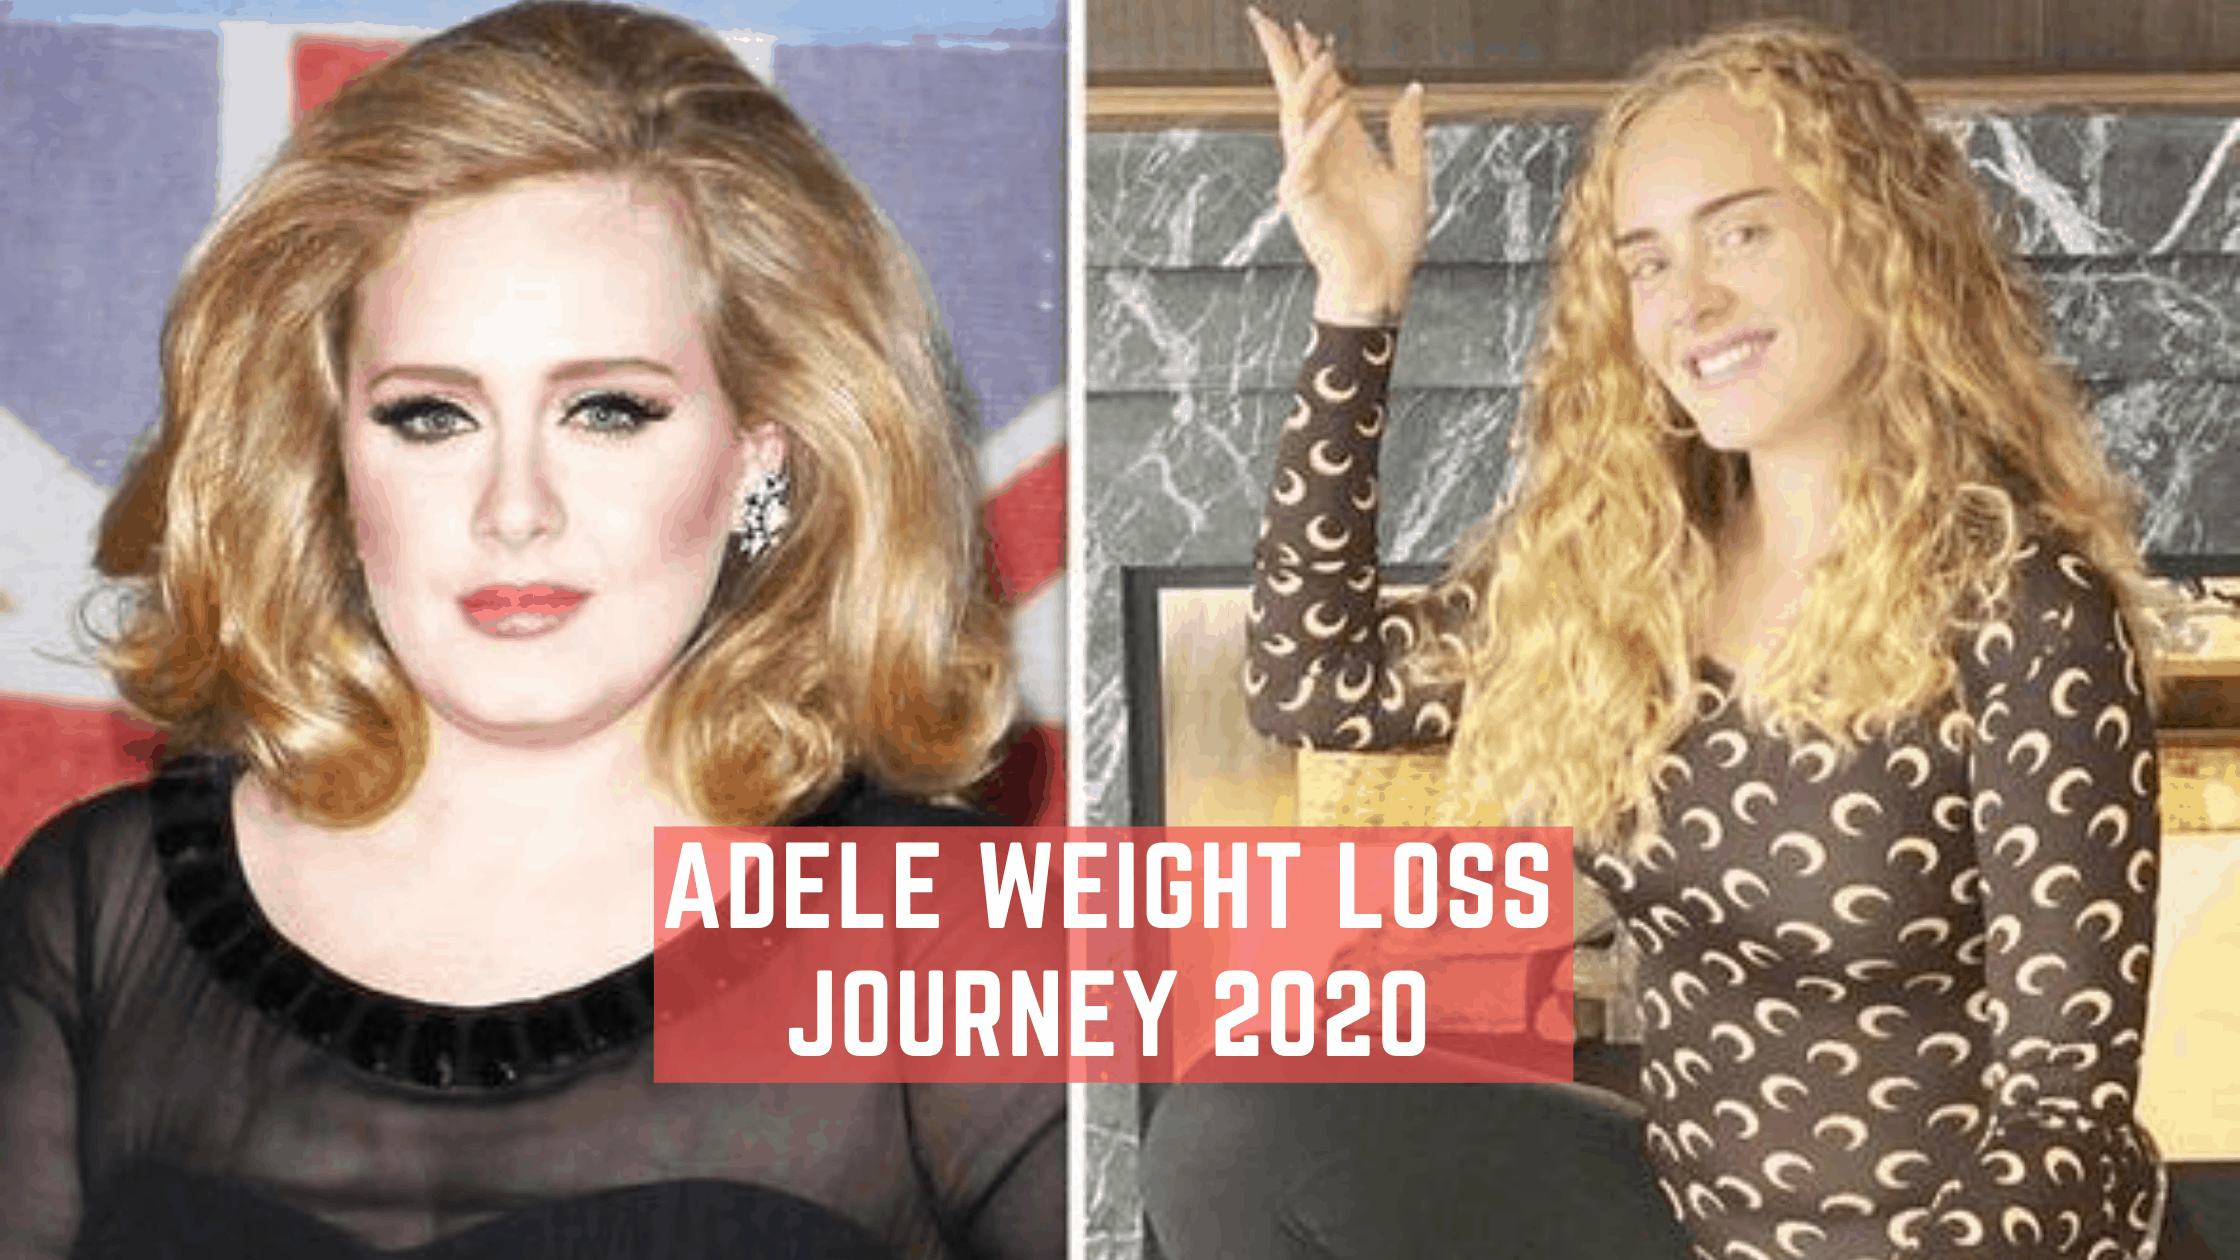 Adele Weight Loss Jouney 2020 | Things That Helped Her ...